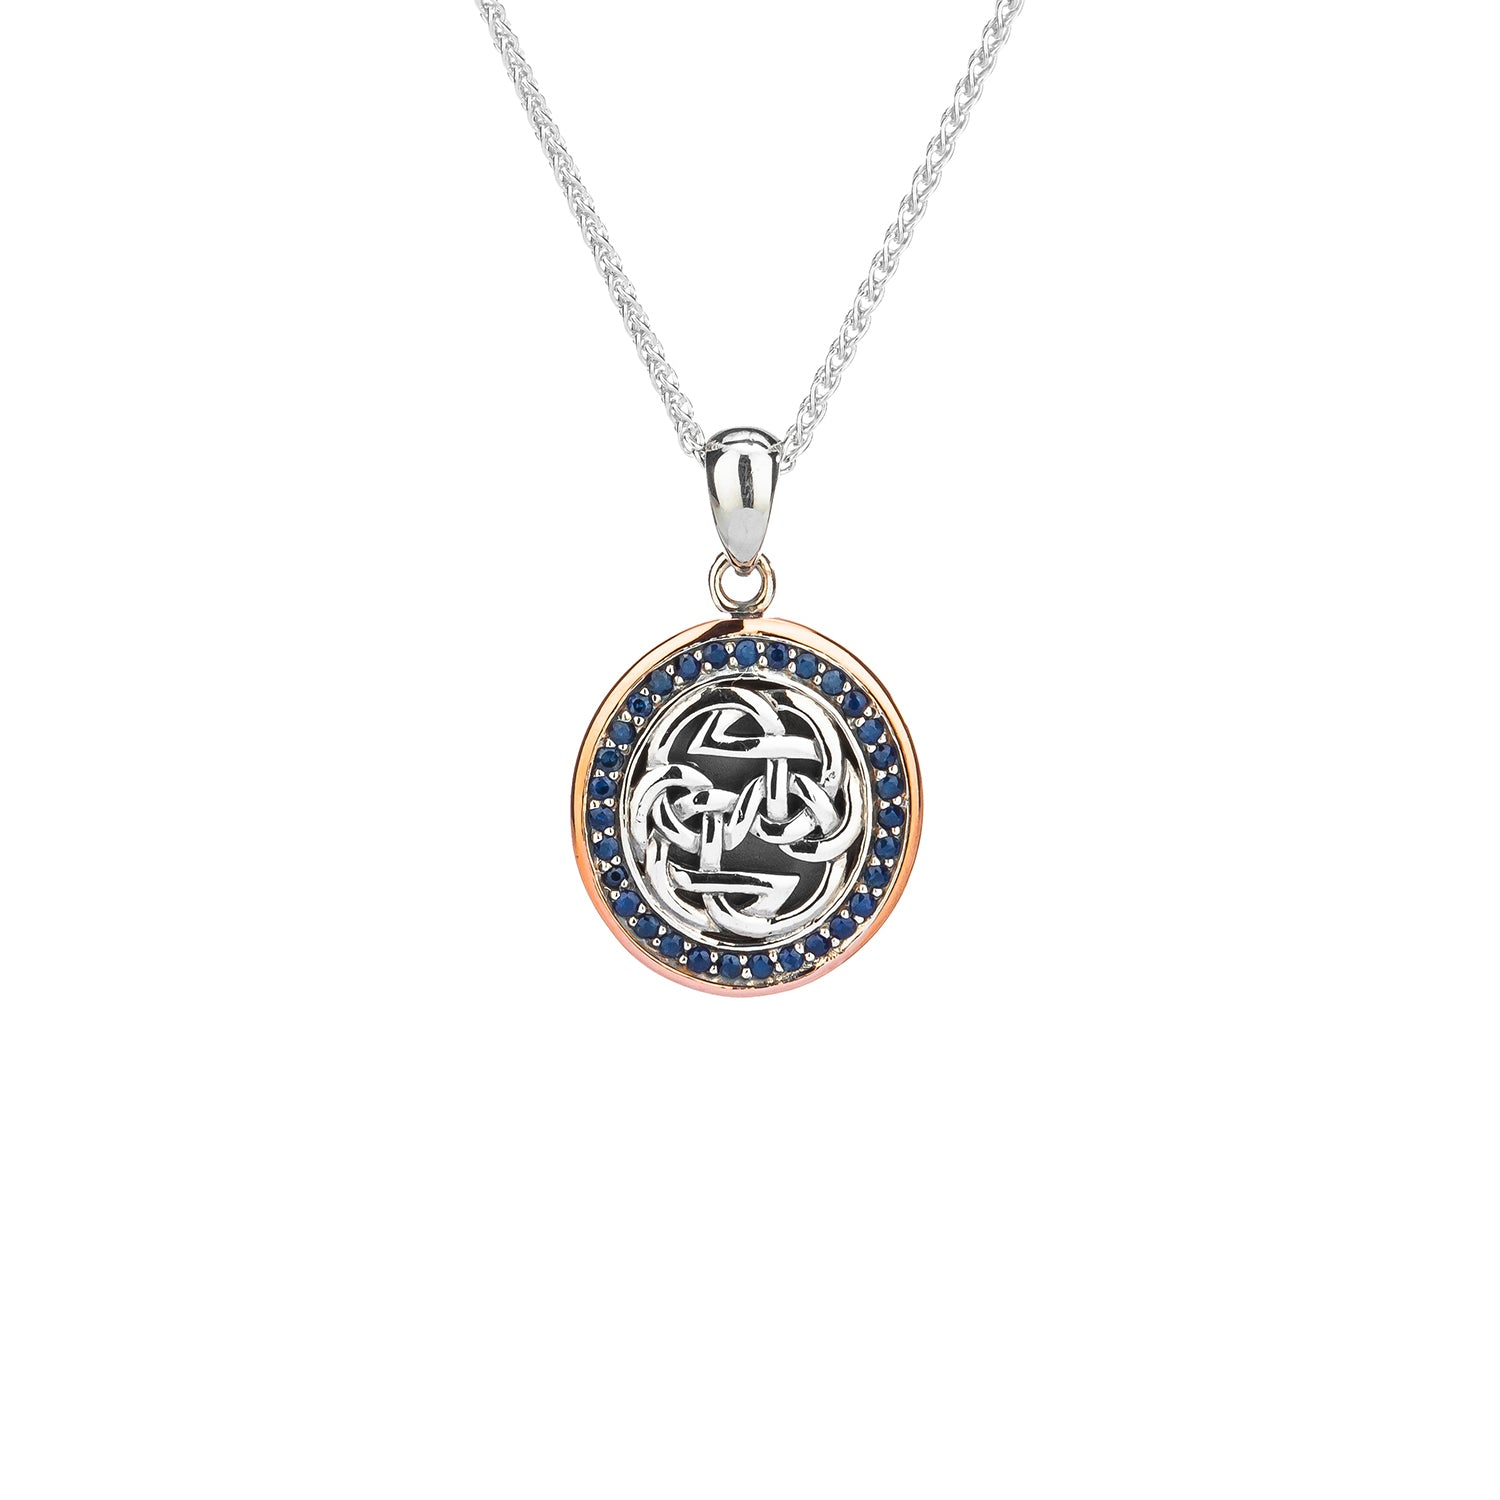 Pendant Oxidized 10k Rose Blue Sapphire Lewis Knot - Path of Life Pendant from welch and company jewelers near syracuse ny